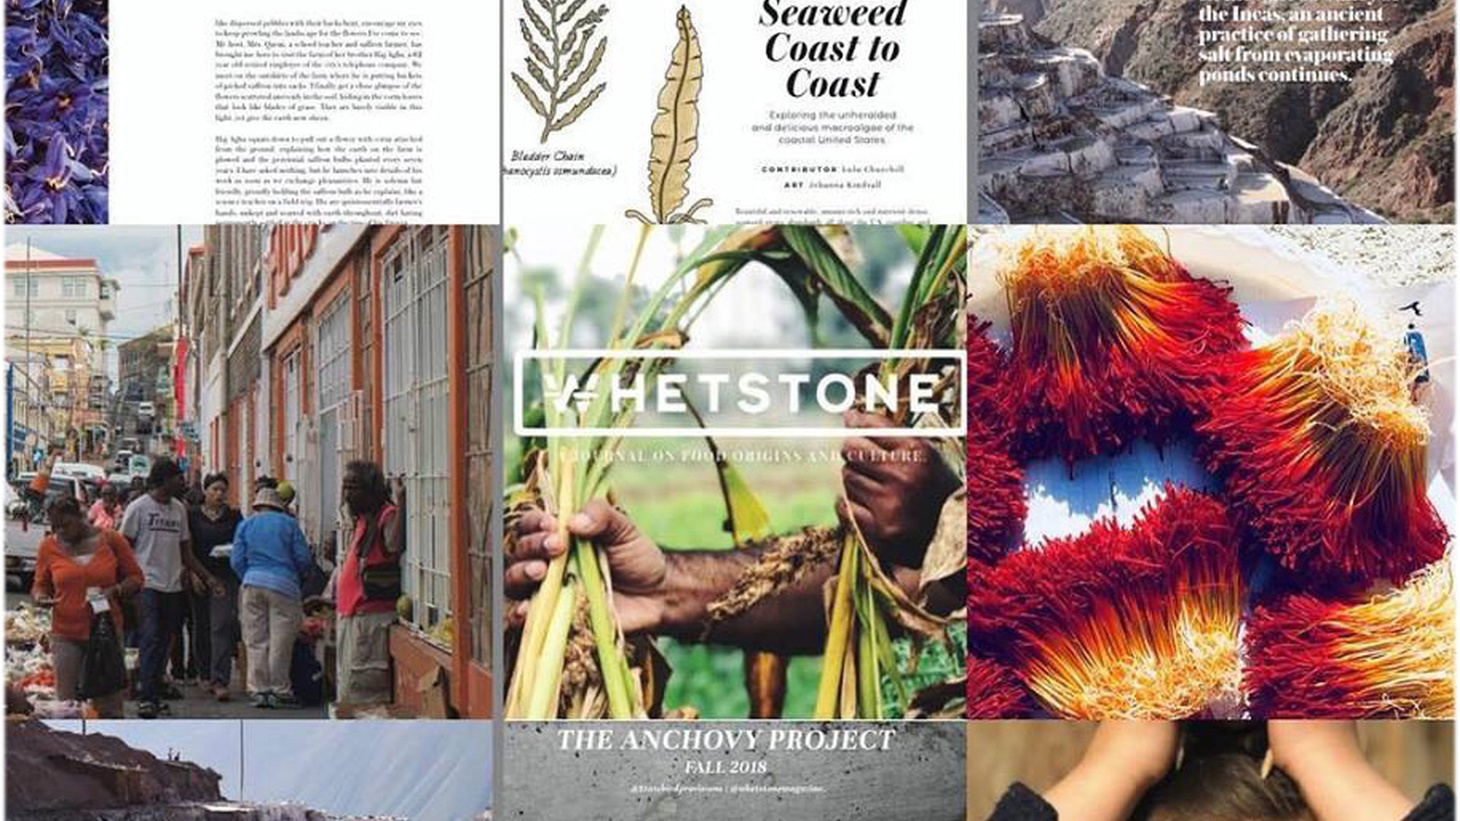 Whetstone Magazine publishes stories and images of food origins from around the world, including a recent spread on a saffron harvest in Qa'en, Iran